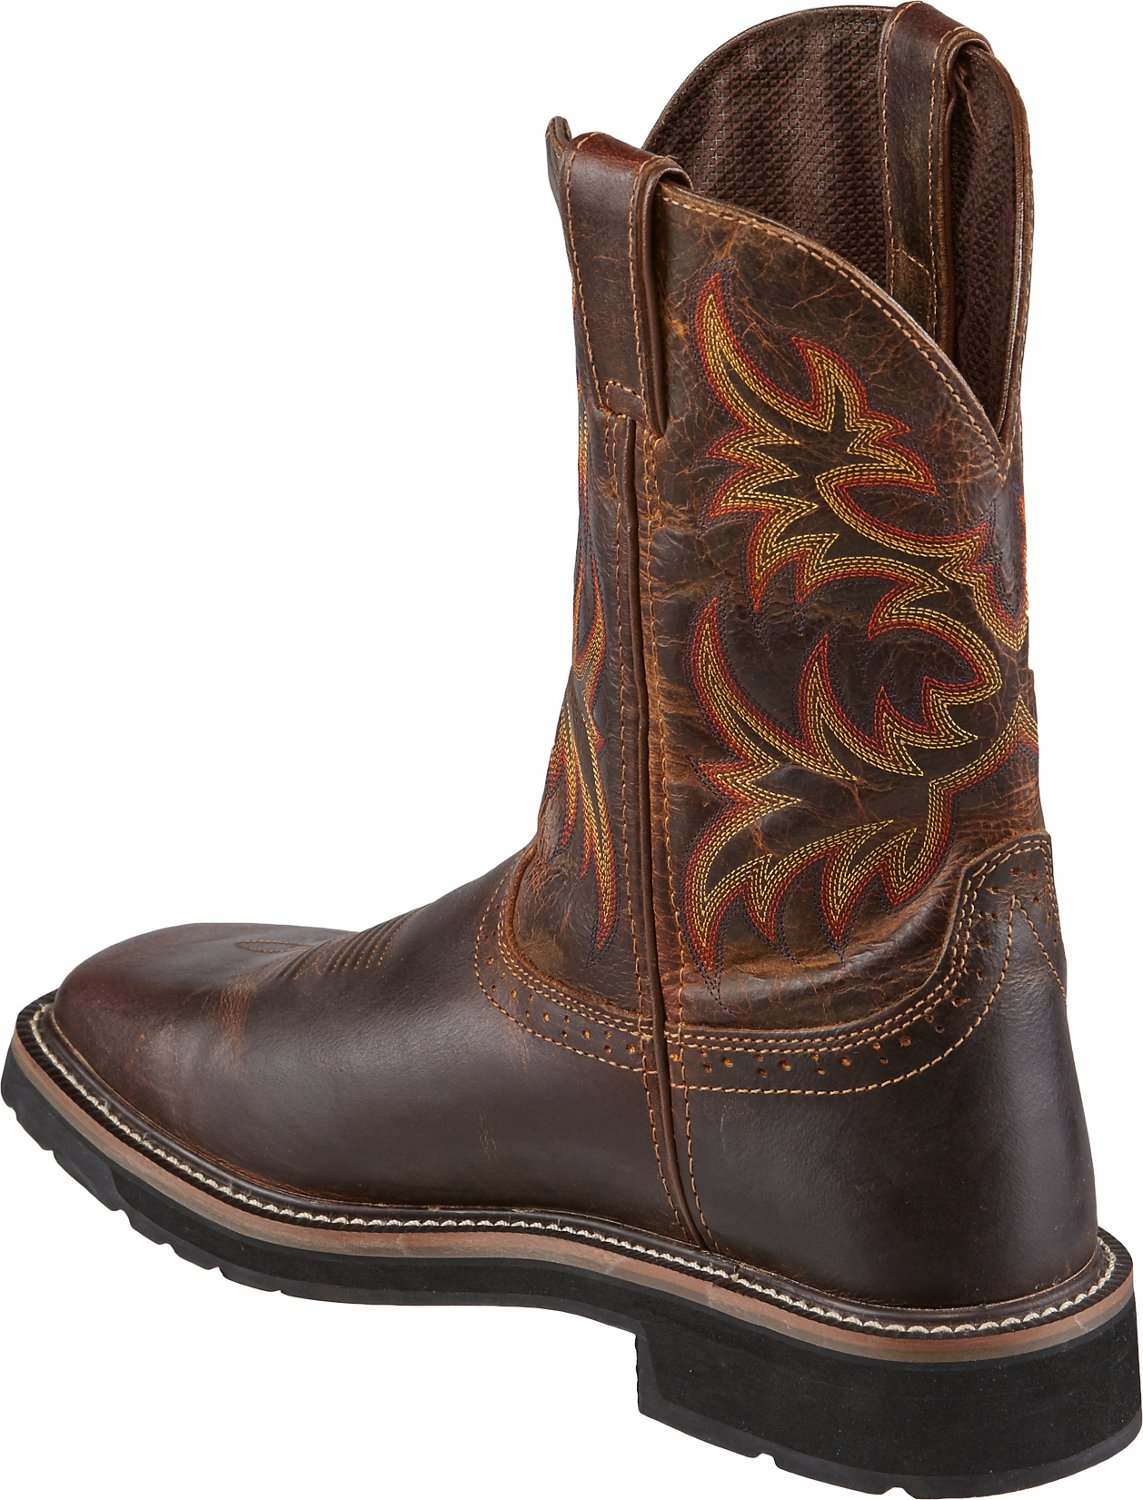 Justin Men S Stampede Square Toe Work Boots Academy